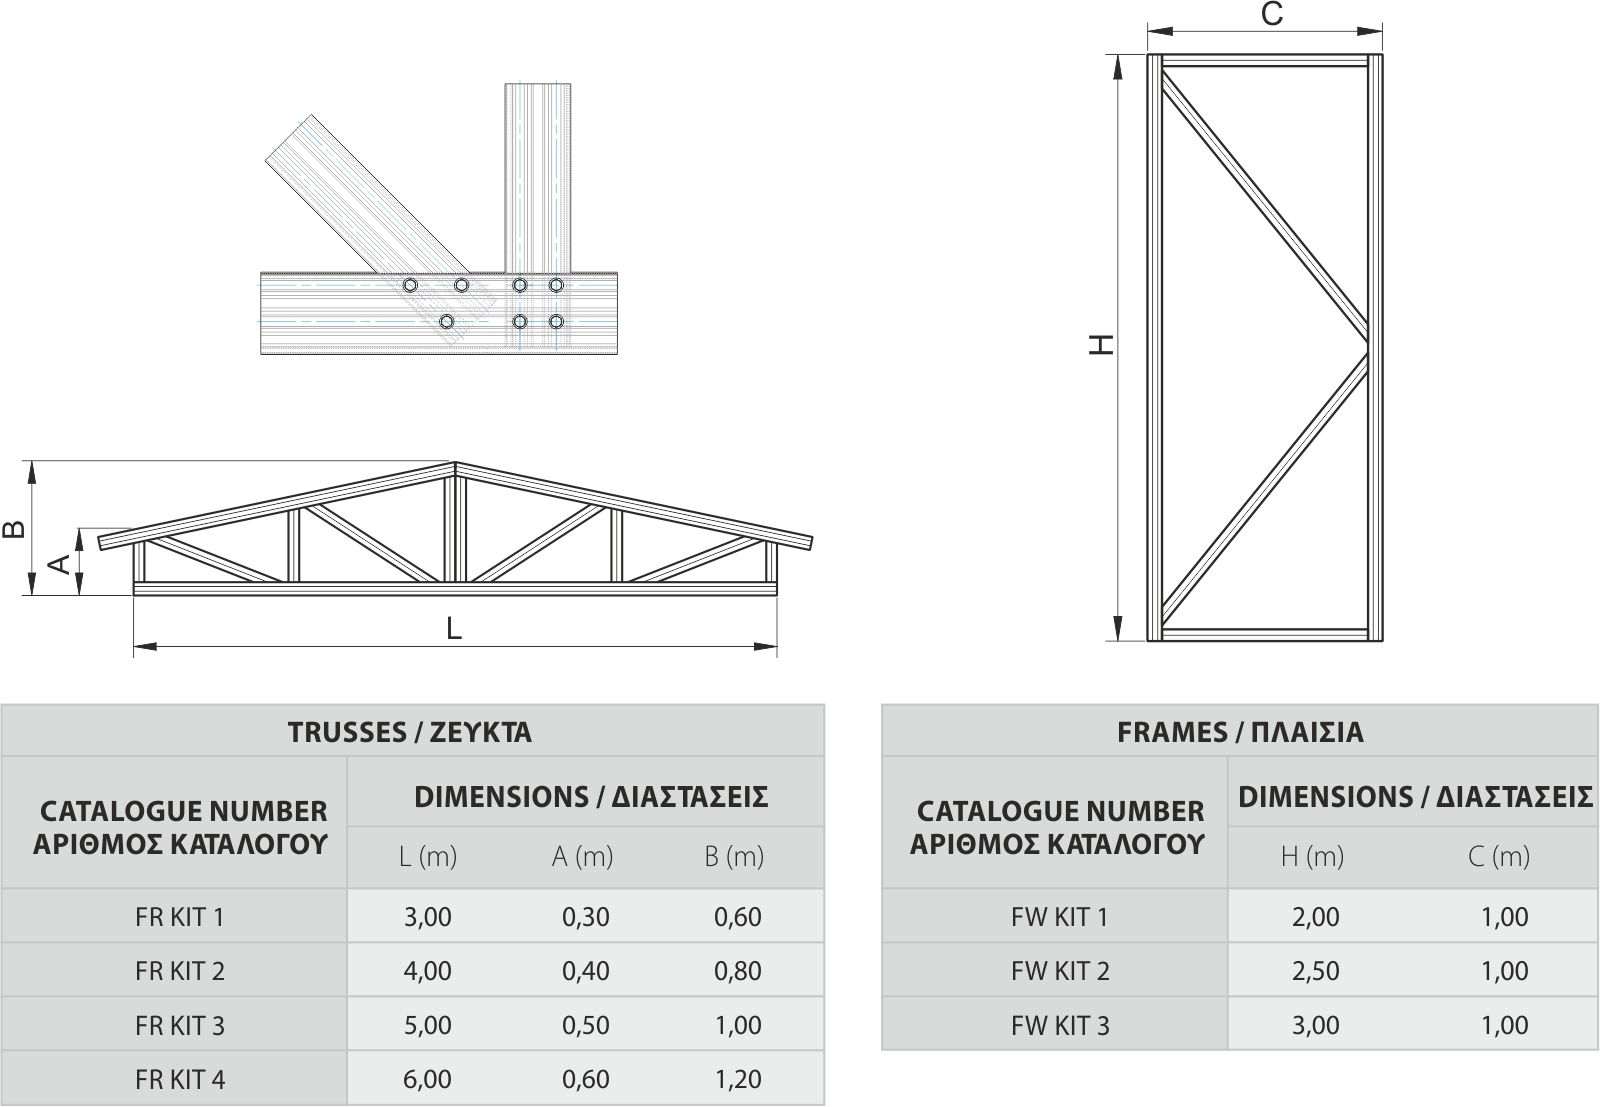 Trusses and frames of standard size